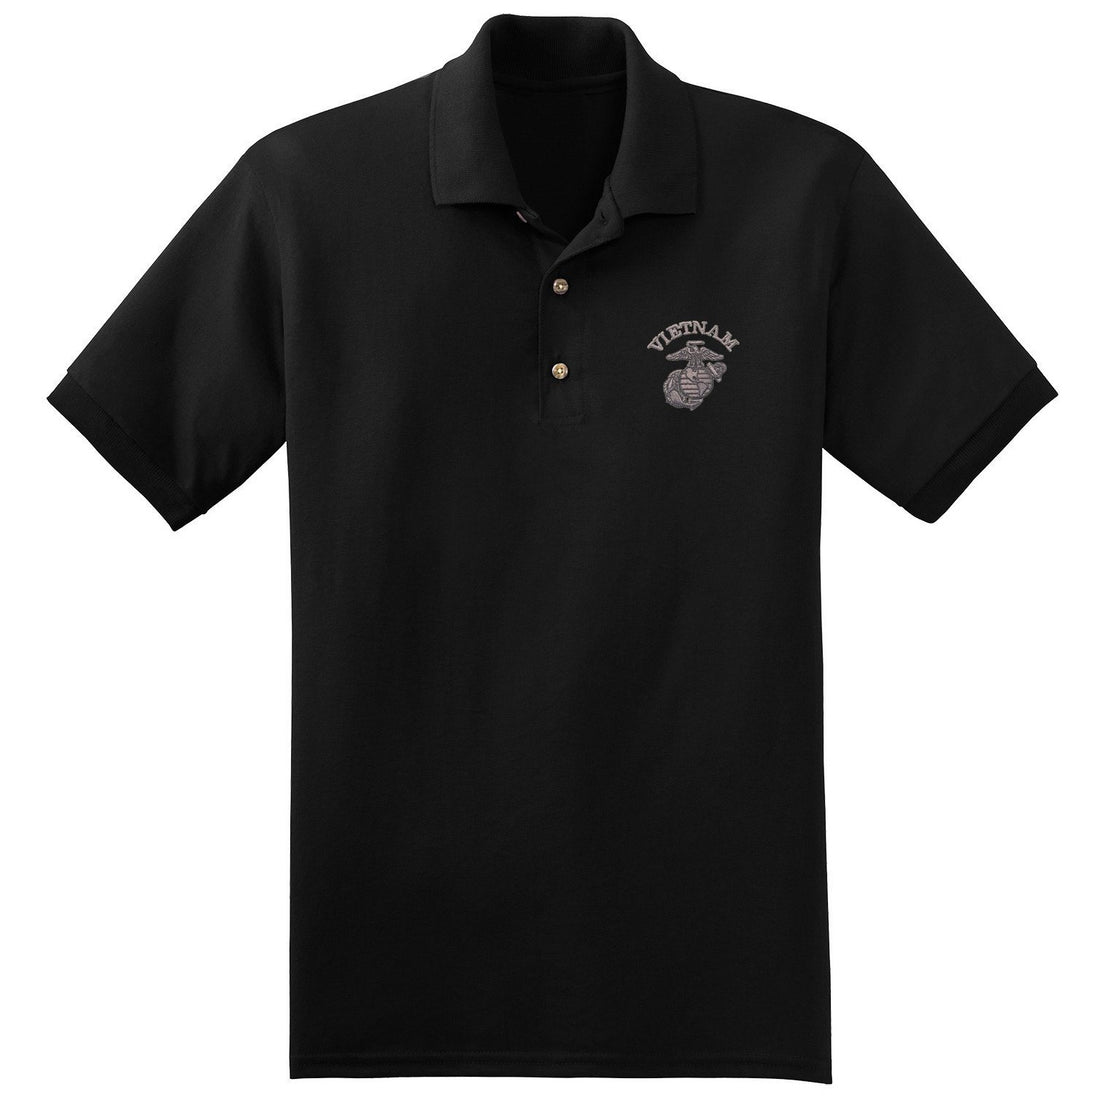 Vietnam EGA Polo (MULTIPLE COLORS) - Marine Corps Direct  - 3